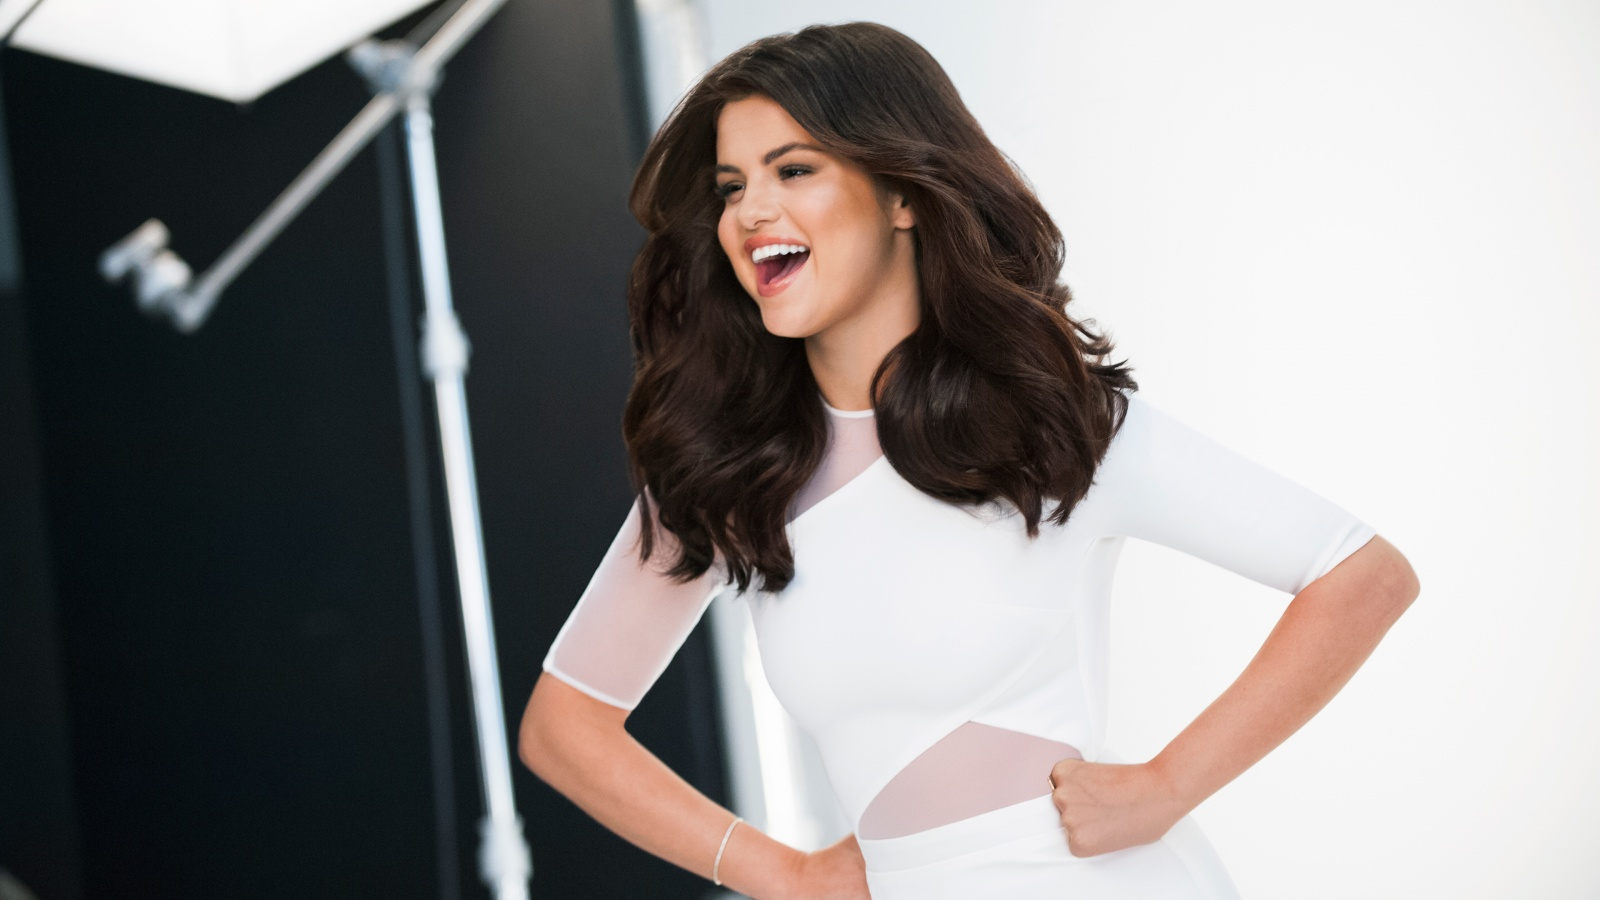 Selena Gomez Hd Wallpapers Most Beautiful Places In The